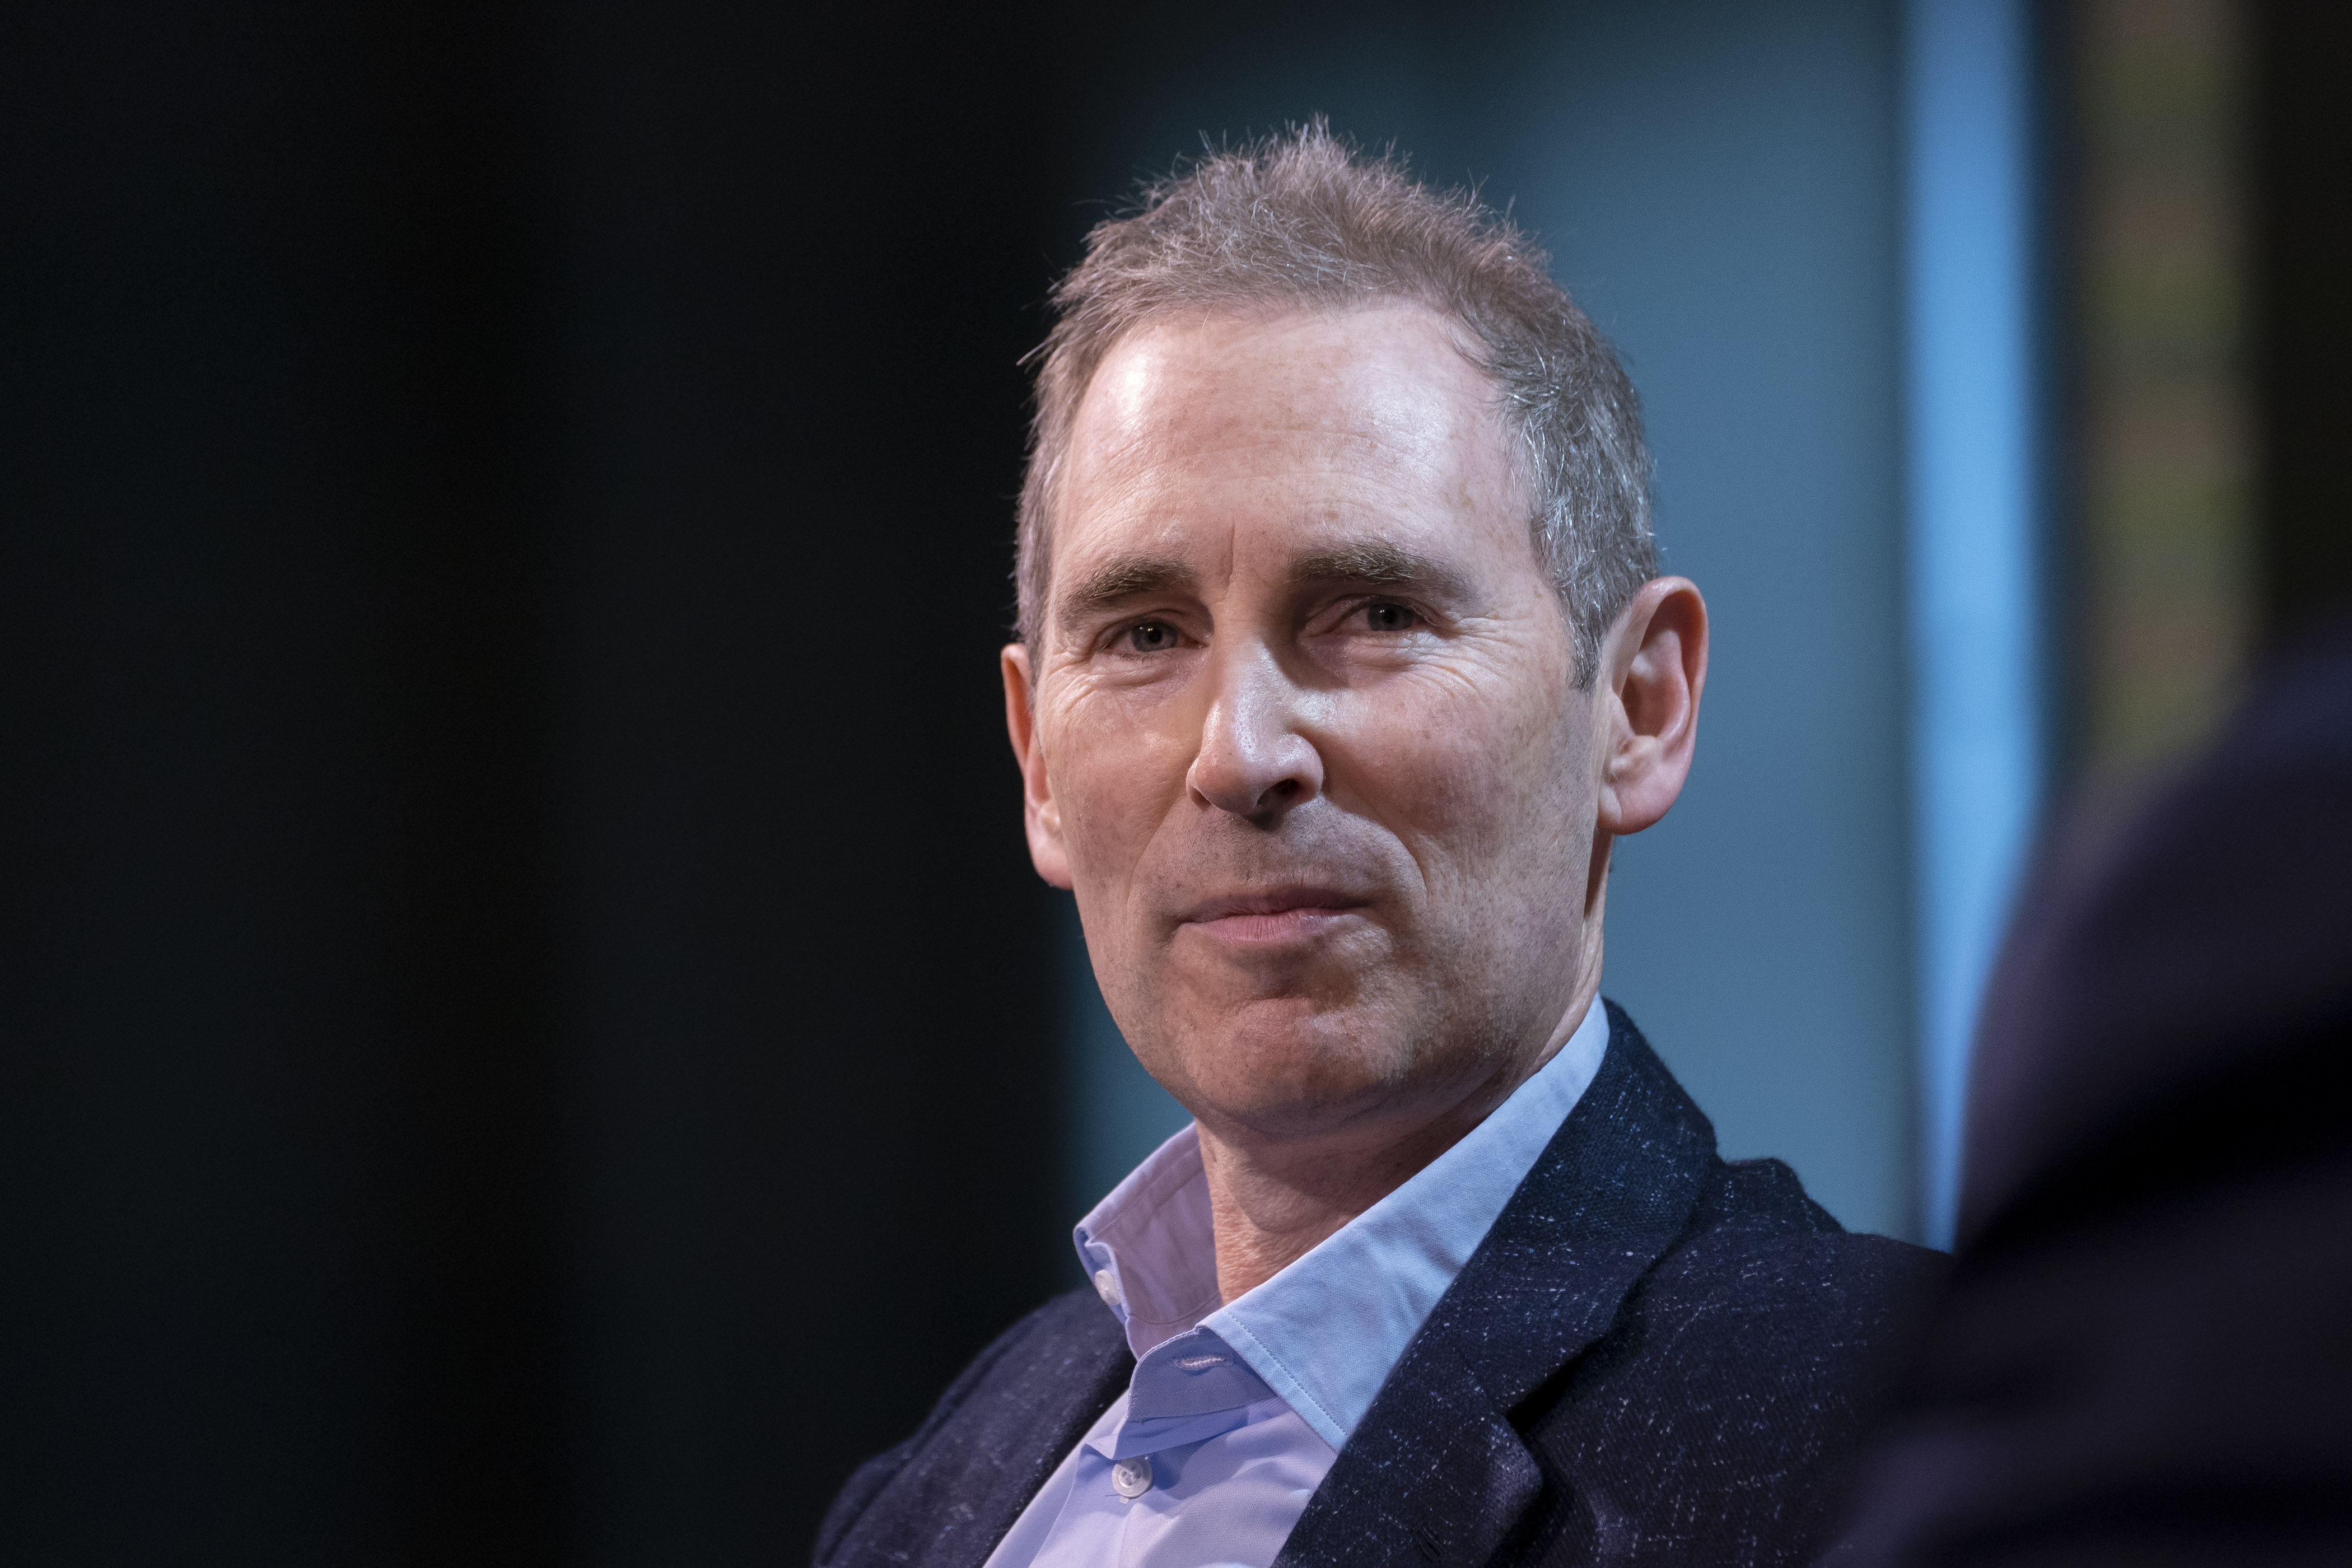 Andy Jassy, chief executive officer of Amazon.Com Inc., during the GeekWire Summit in Seattle, Washington, U.S., on Oct. 5, 2021.